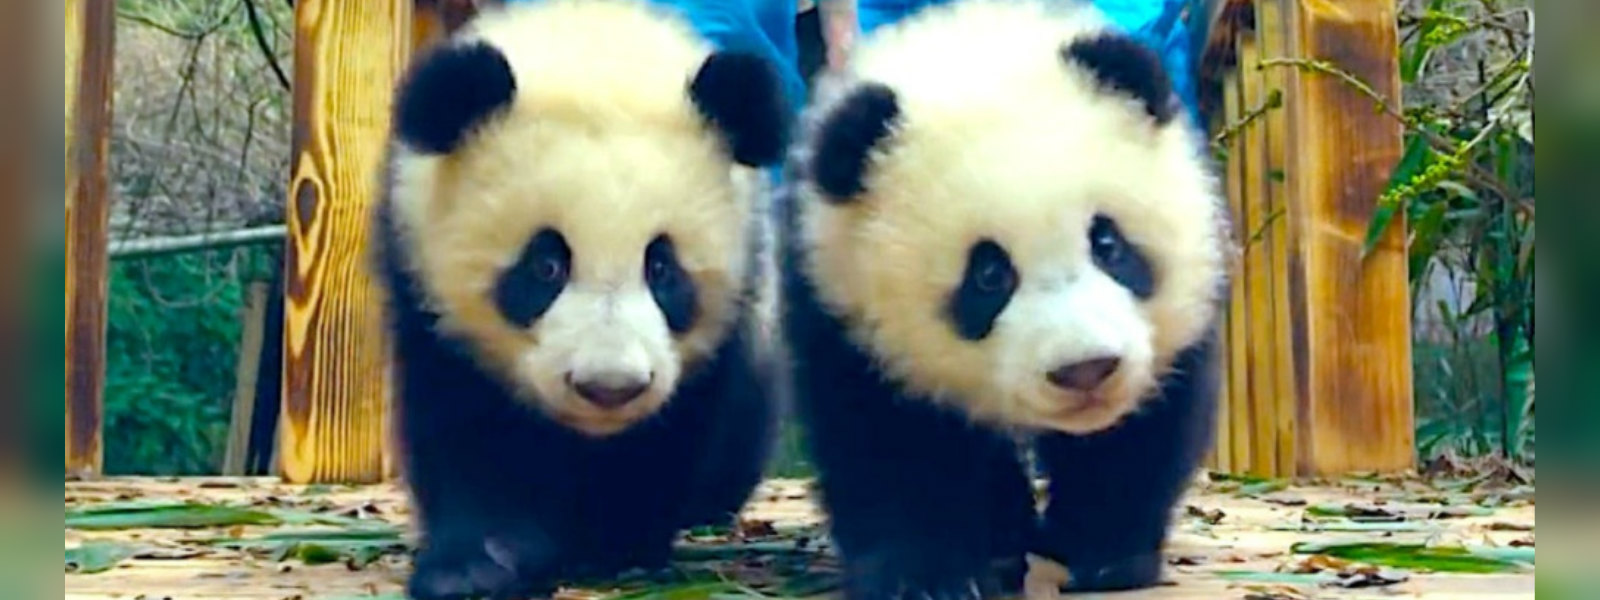 A new record by a pair of Pandas in Mexico